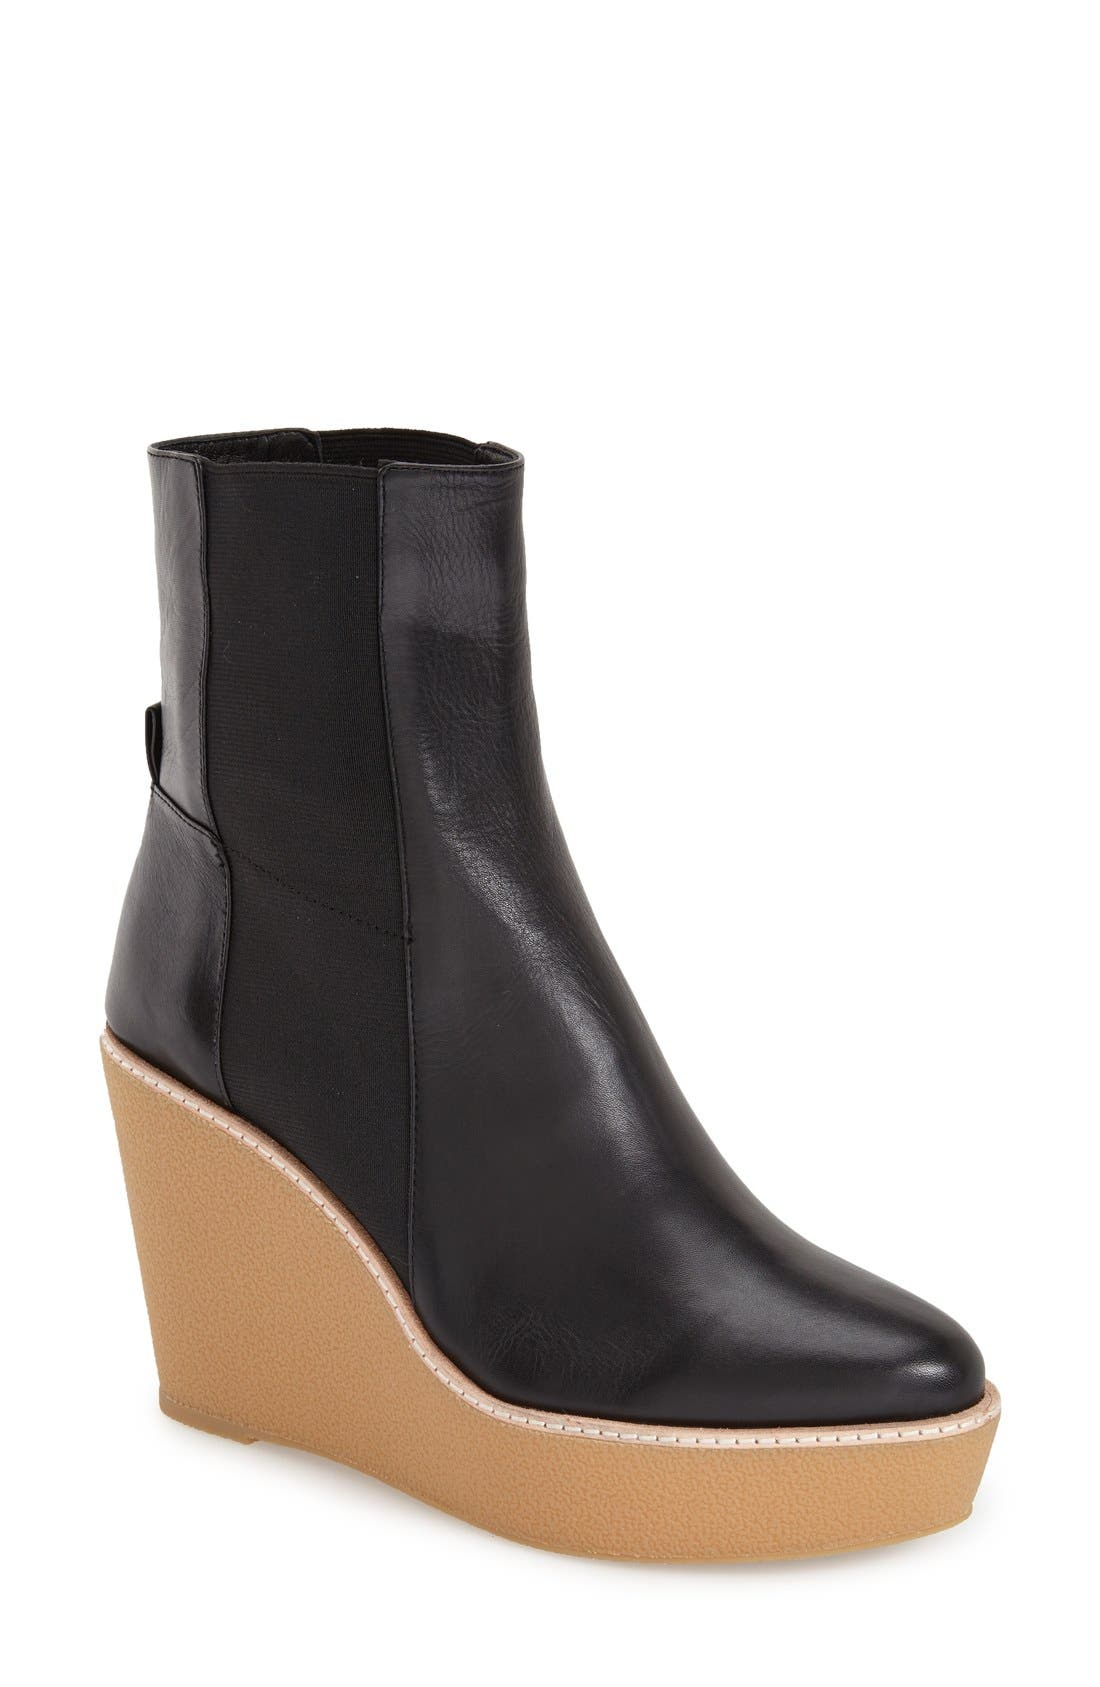 Alternate Image 1 Selected - Derek Lam 10 Crosby 'Sandy' Almond Toe Wedge Bootie (Women)